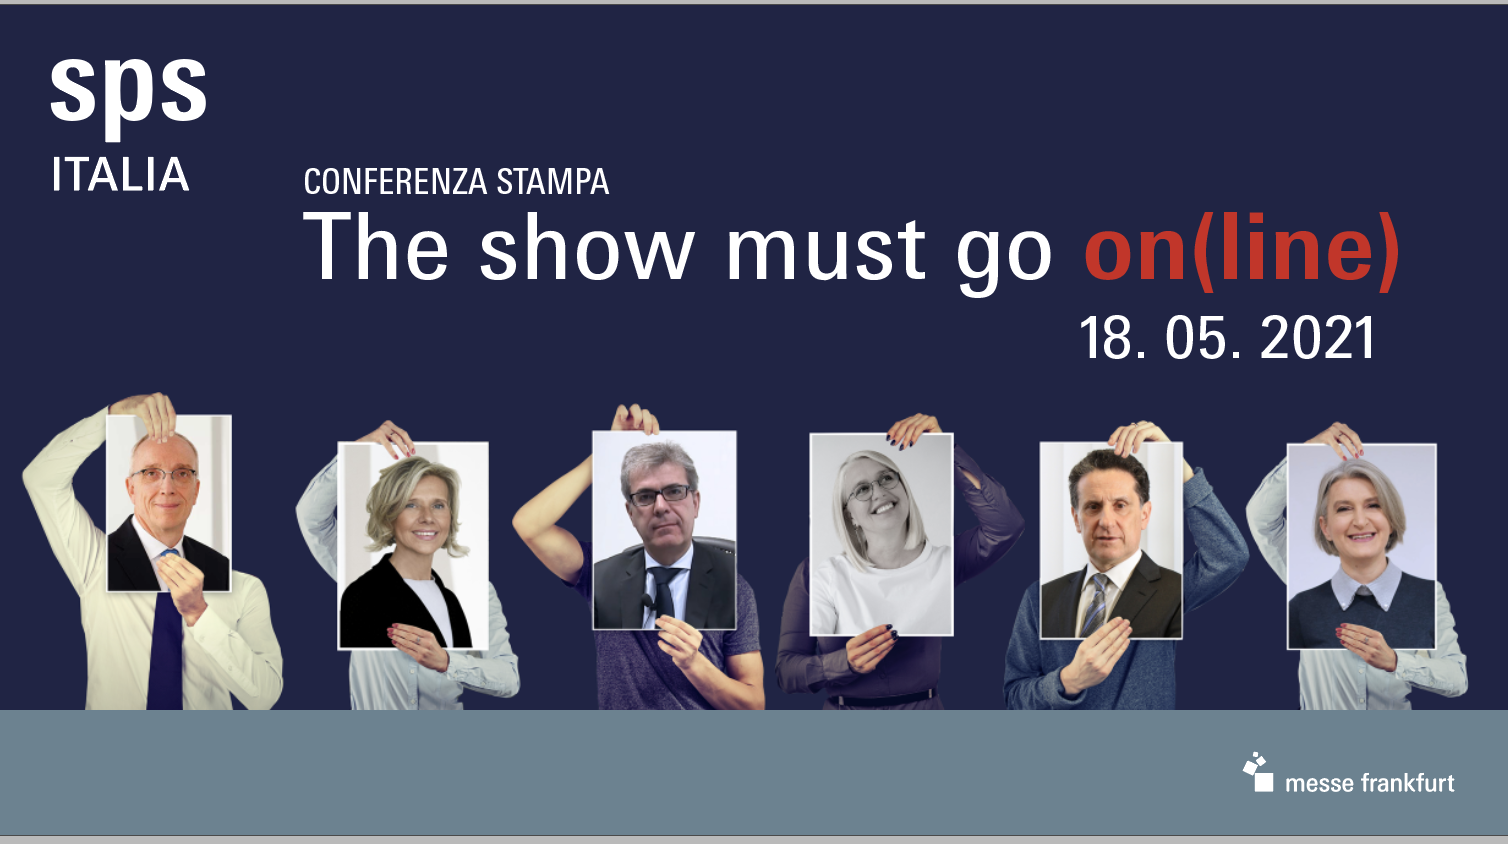 The show must go on(line)